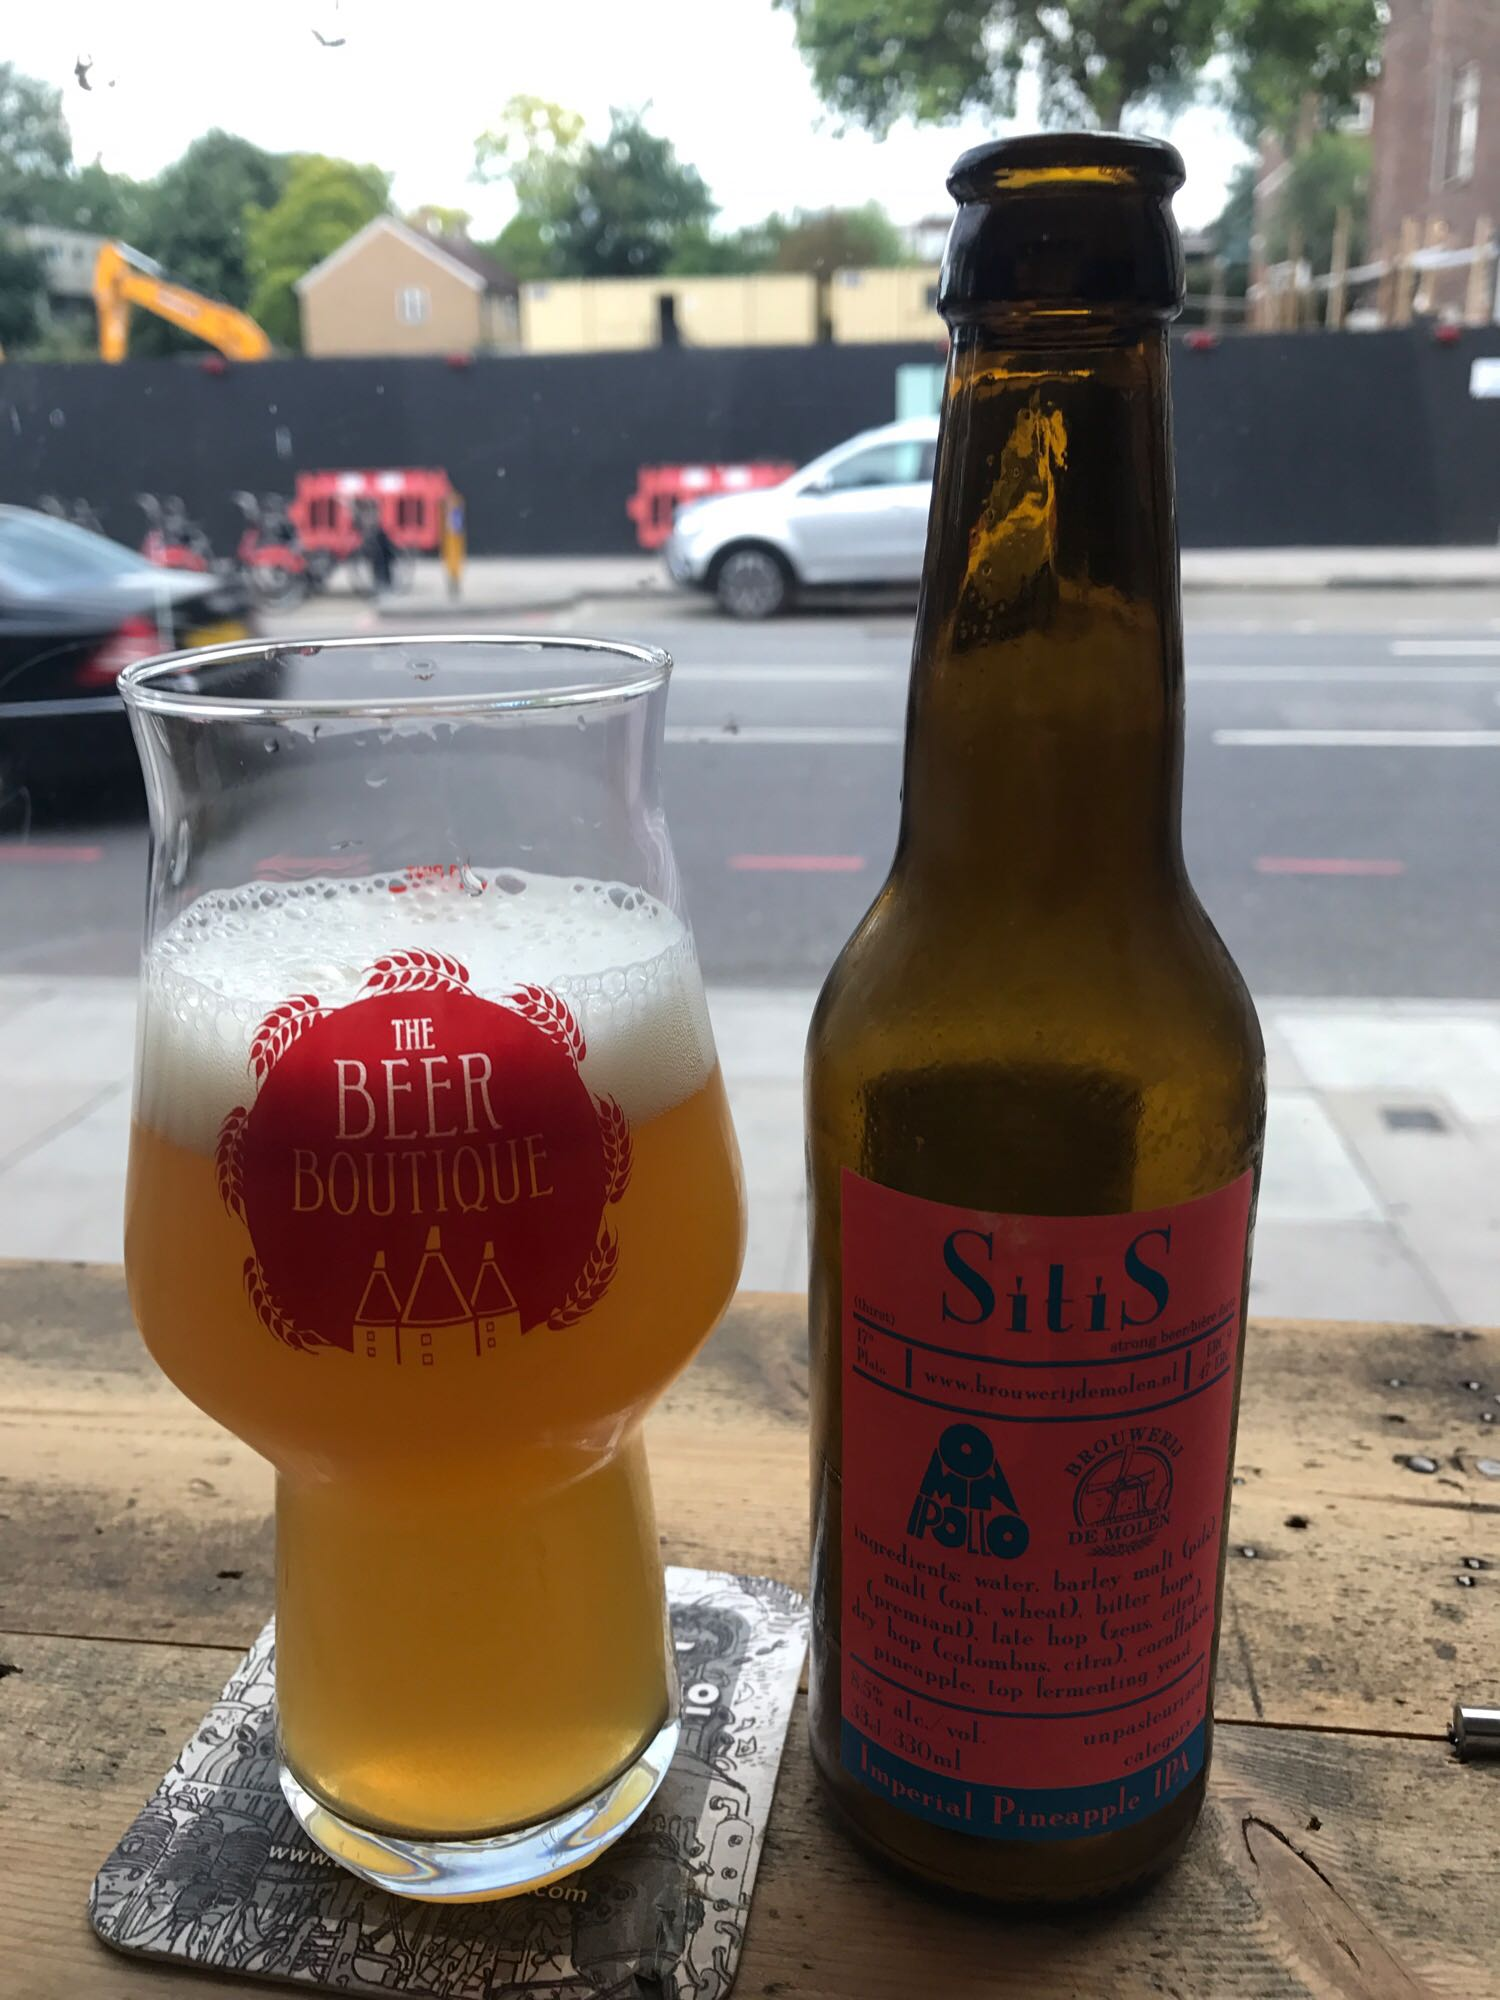 """SitiS -Imperial Double IPA 8.5% //Brouwerij De Molen x Omnipollo - """"Hey, Hedges, we heard you like pineapple?"""" """"Yes"""" """"What about when it's in beer?"""" """"Double yes"""" """"What about in a Double IPA?"""" """"Triple yes"""" """"What about when it's also a collaboration between two great European breweries?""""""""Why are you still talking?""""I spied this in the fridges at The Beer Boutique in Putney and it wasn't long until we became intimately acquainted. This was brewed using cornflakes and whilst I can't claim my palette is so advanced that I could taste them at all, I think it's the first time I've seen them listed as an ingredient in a beer. Well, I thought it was interesting...Forget the cornflakes - this was all about the pineapple. A juice bomb that tasted super fresh and went down way, way too easy for 8.5%."""